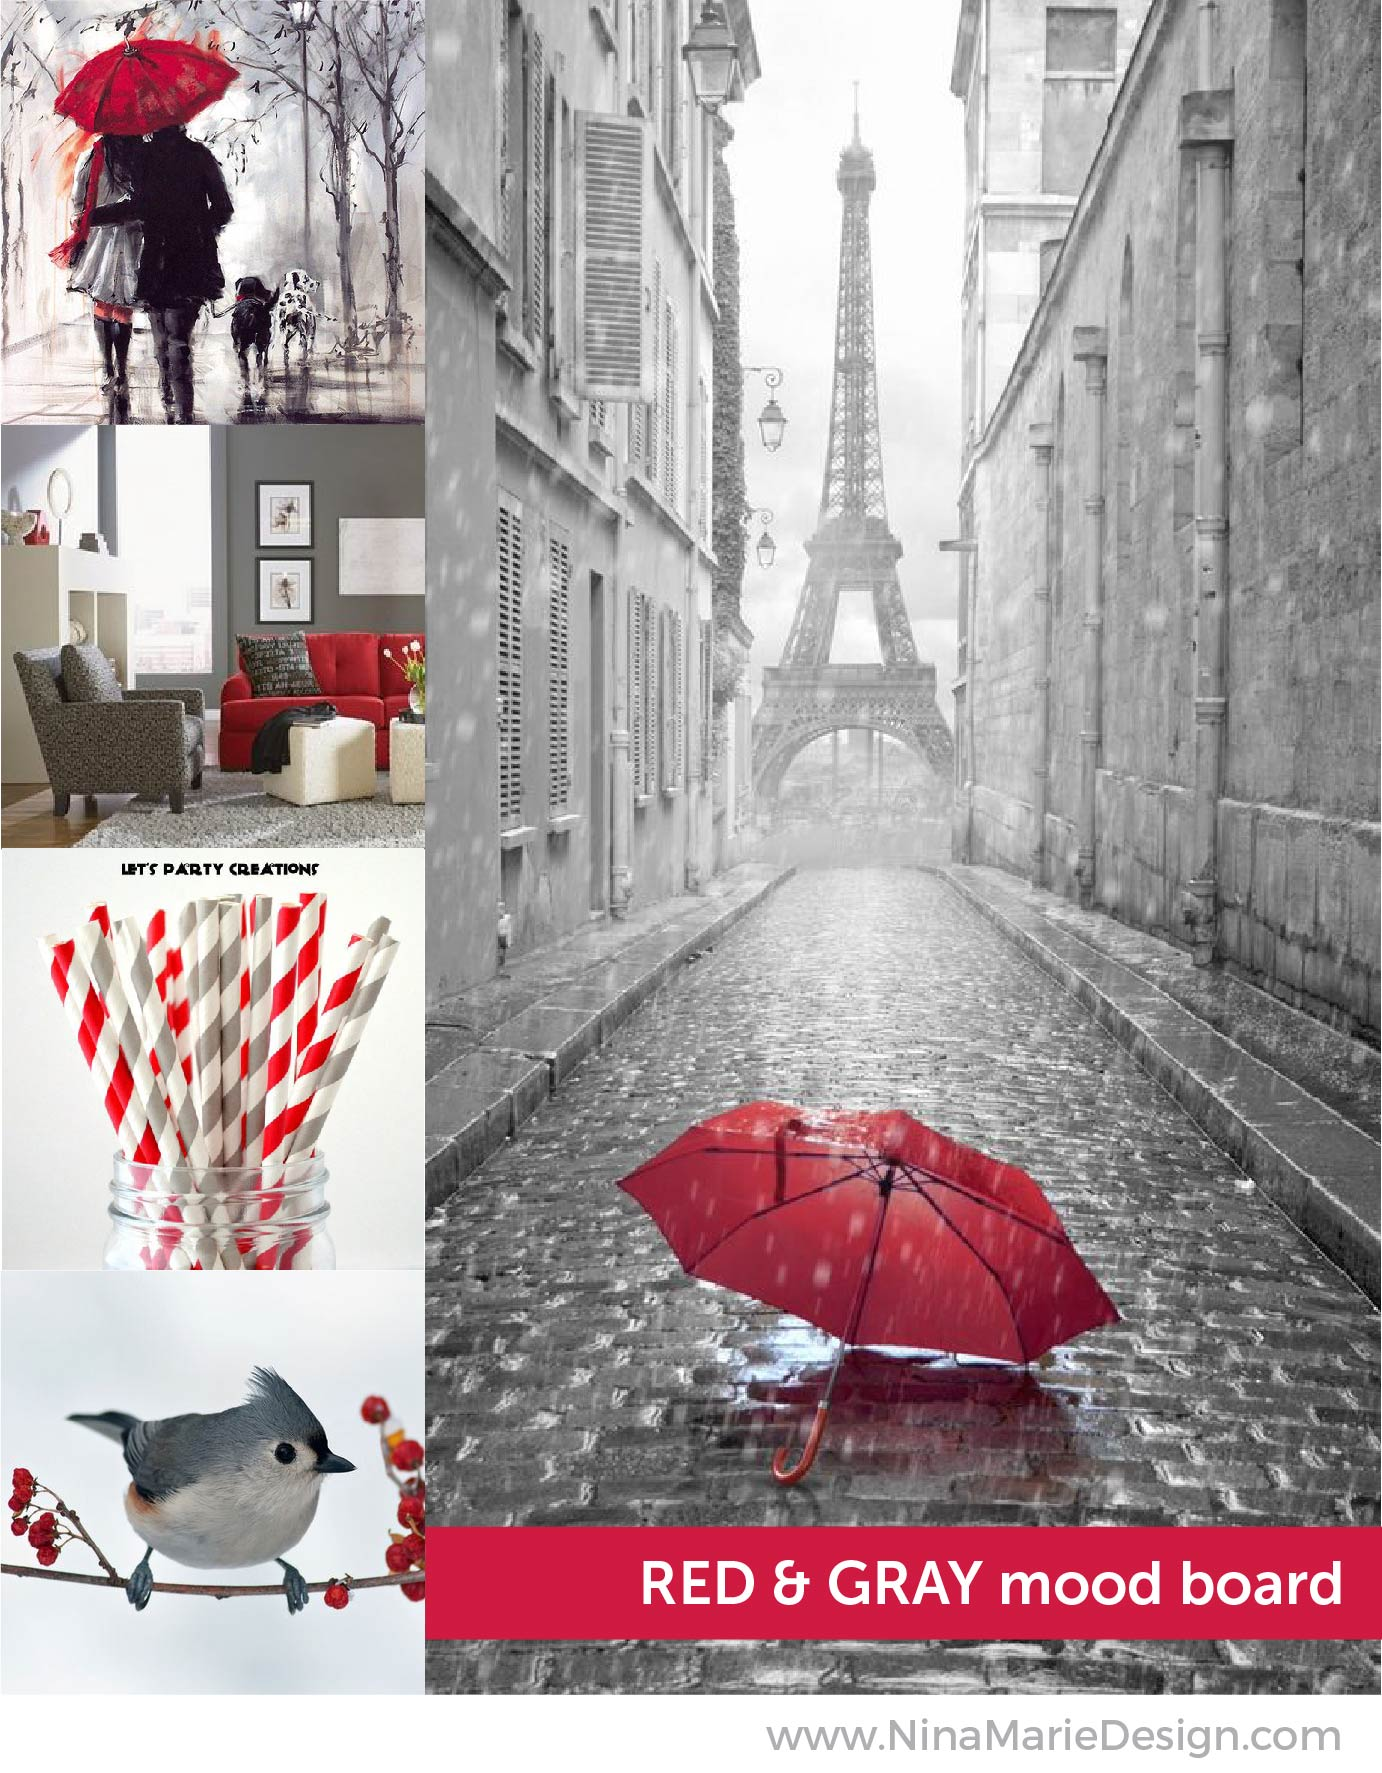 Red & Gray Color Mood Board | Nina-Marie Design